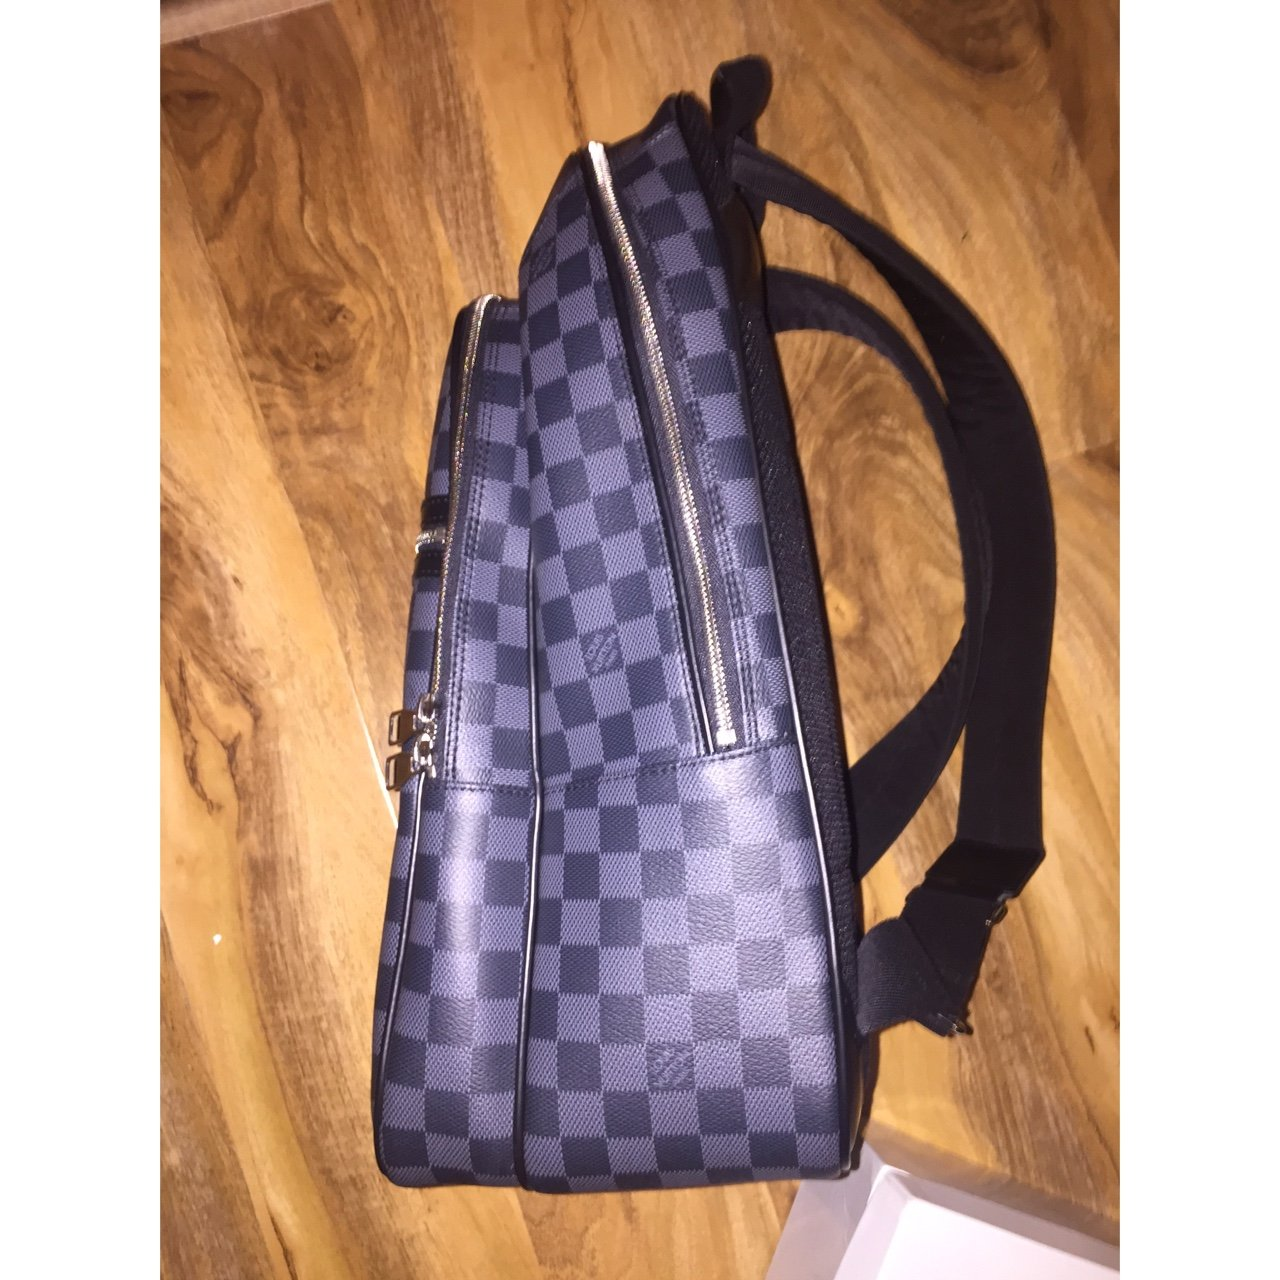 7a4eb44f963c Louis Vuitton Michael Graphite Backpack. As good as new for - Depop